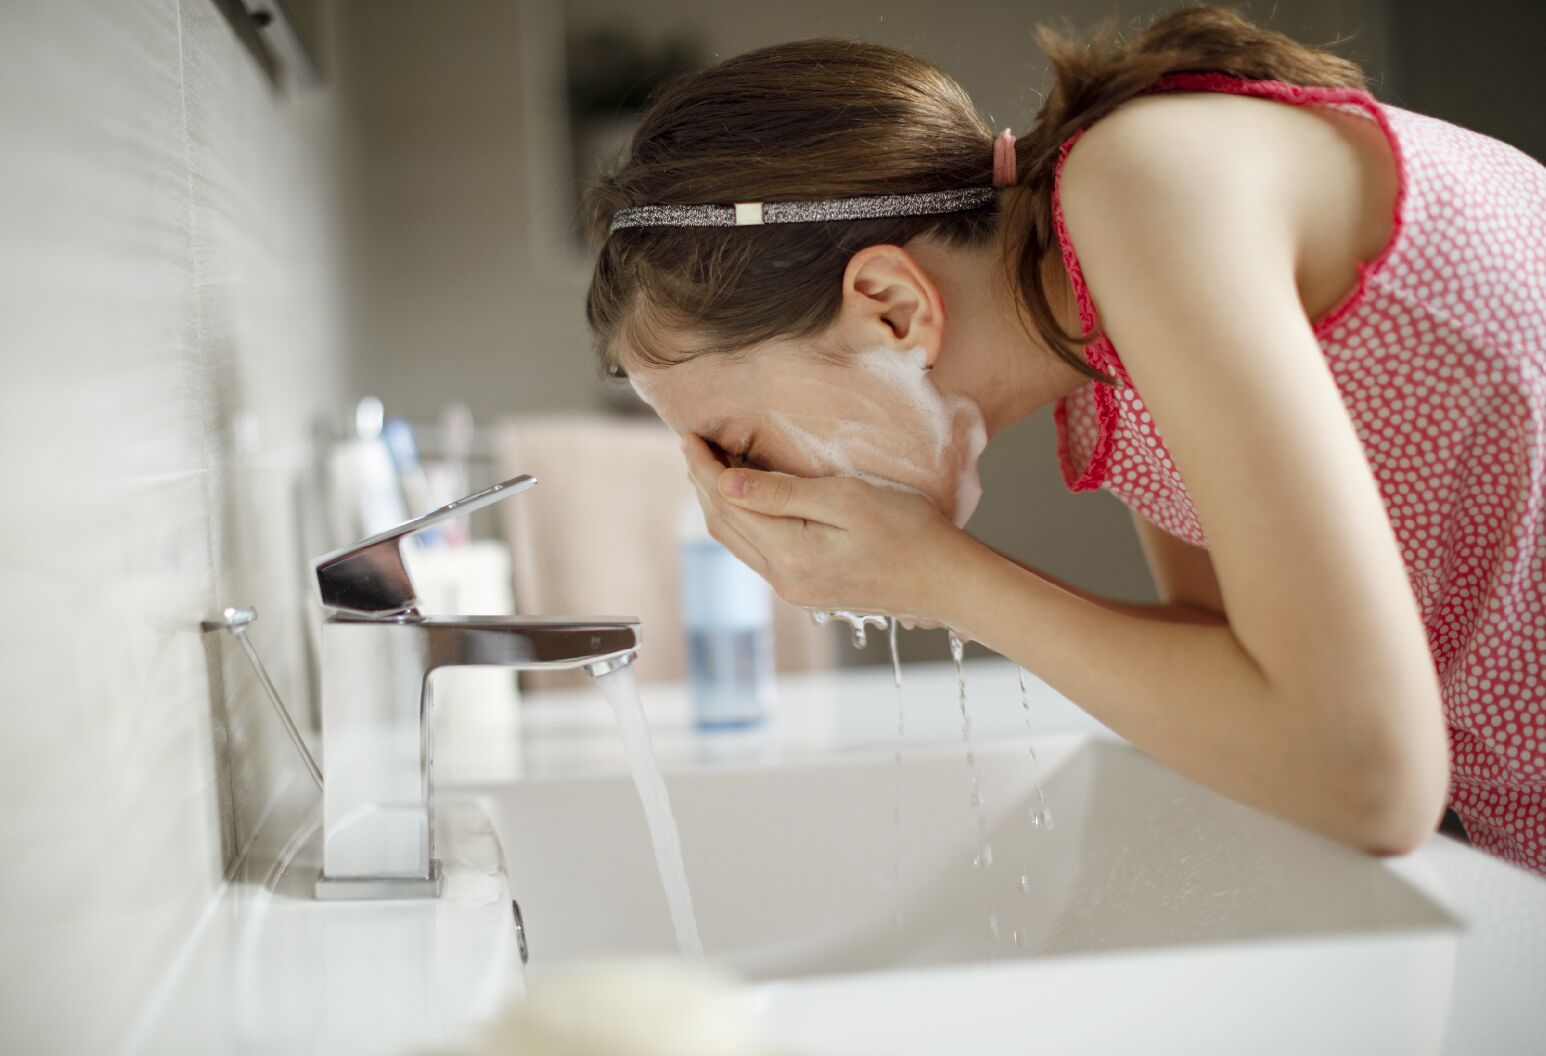 Young girl washes her face.